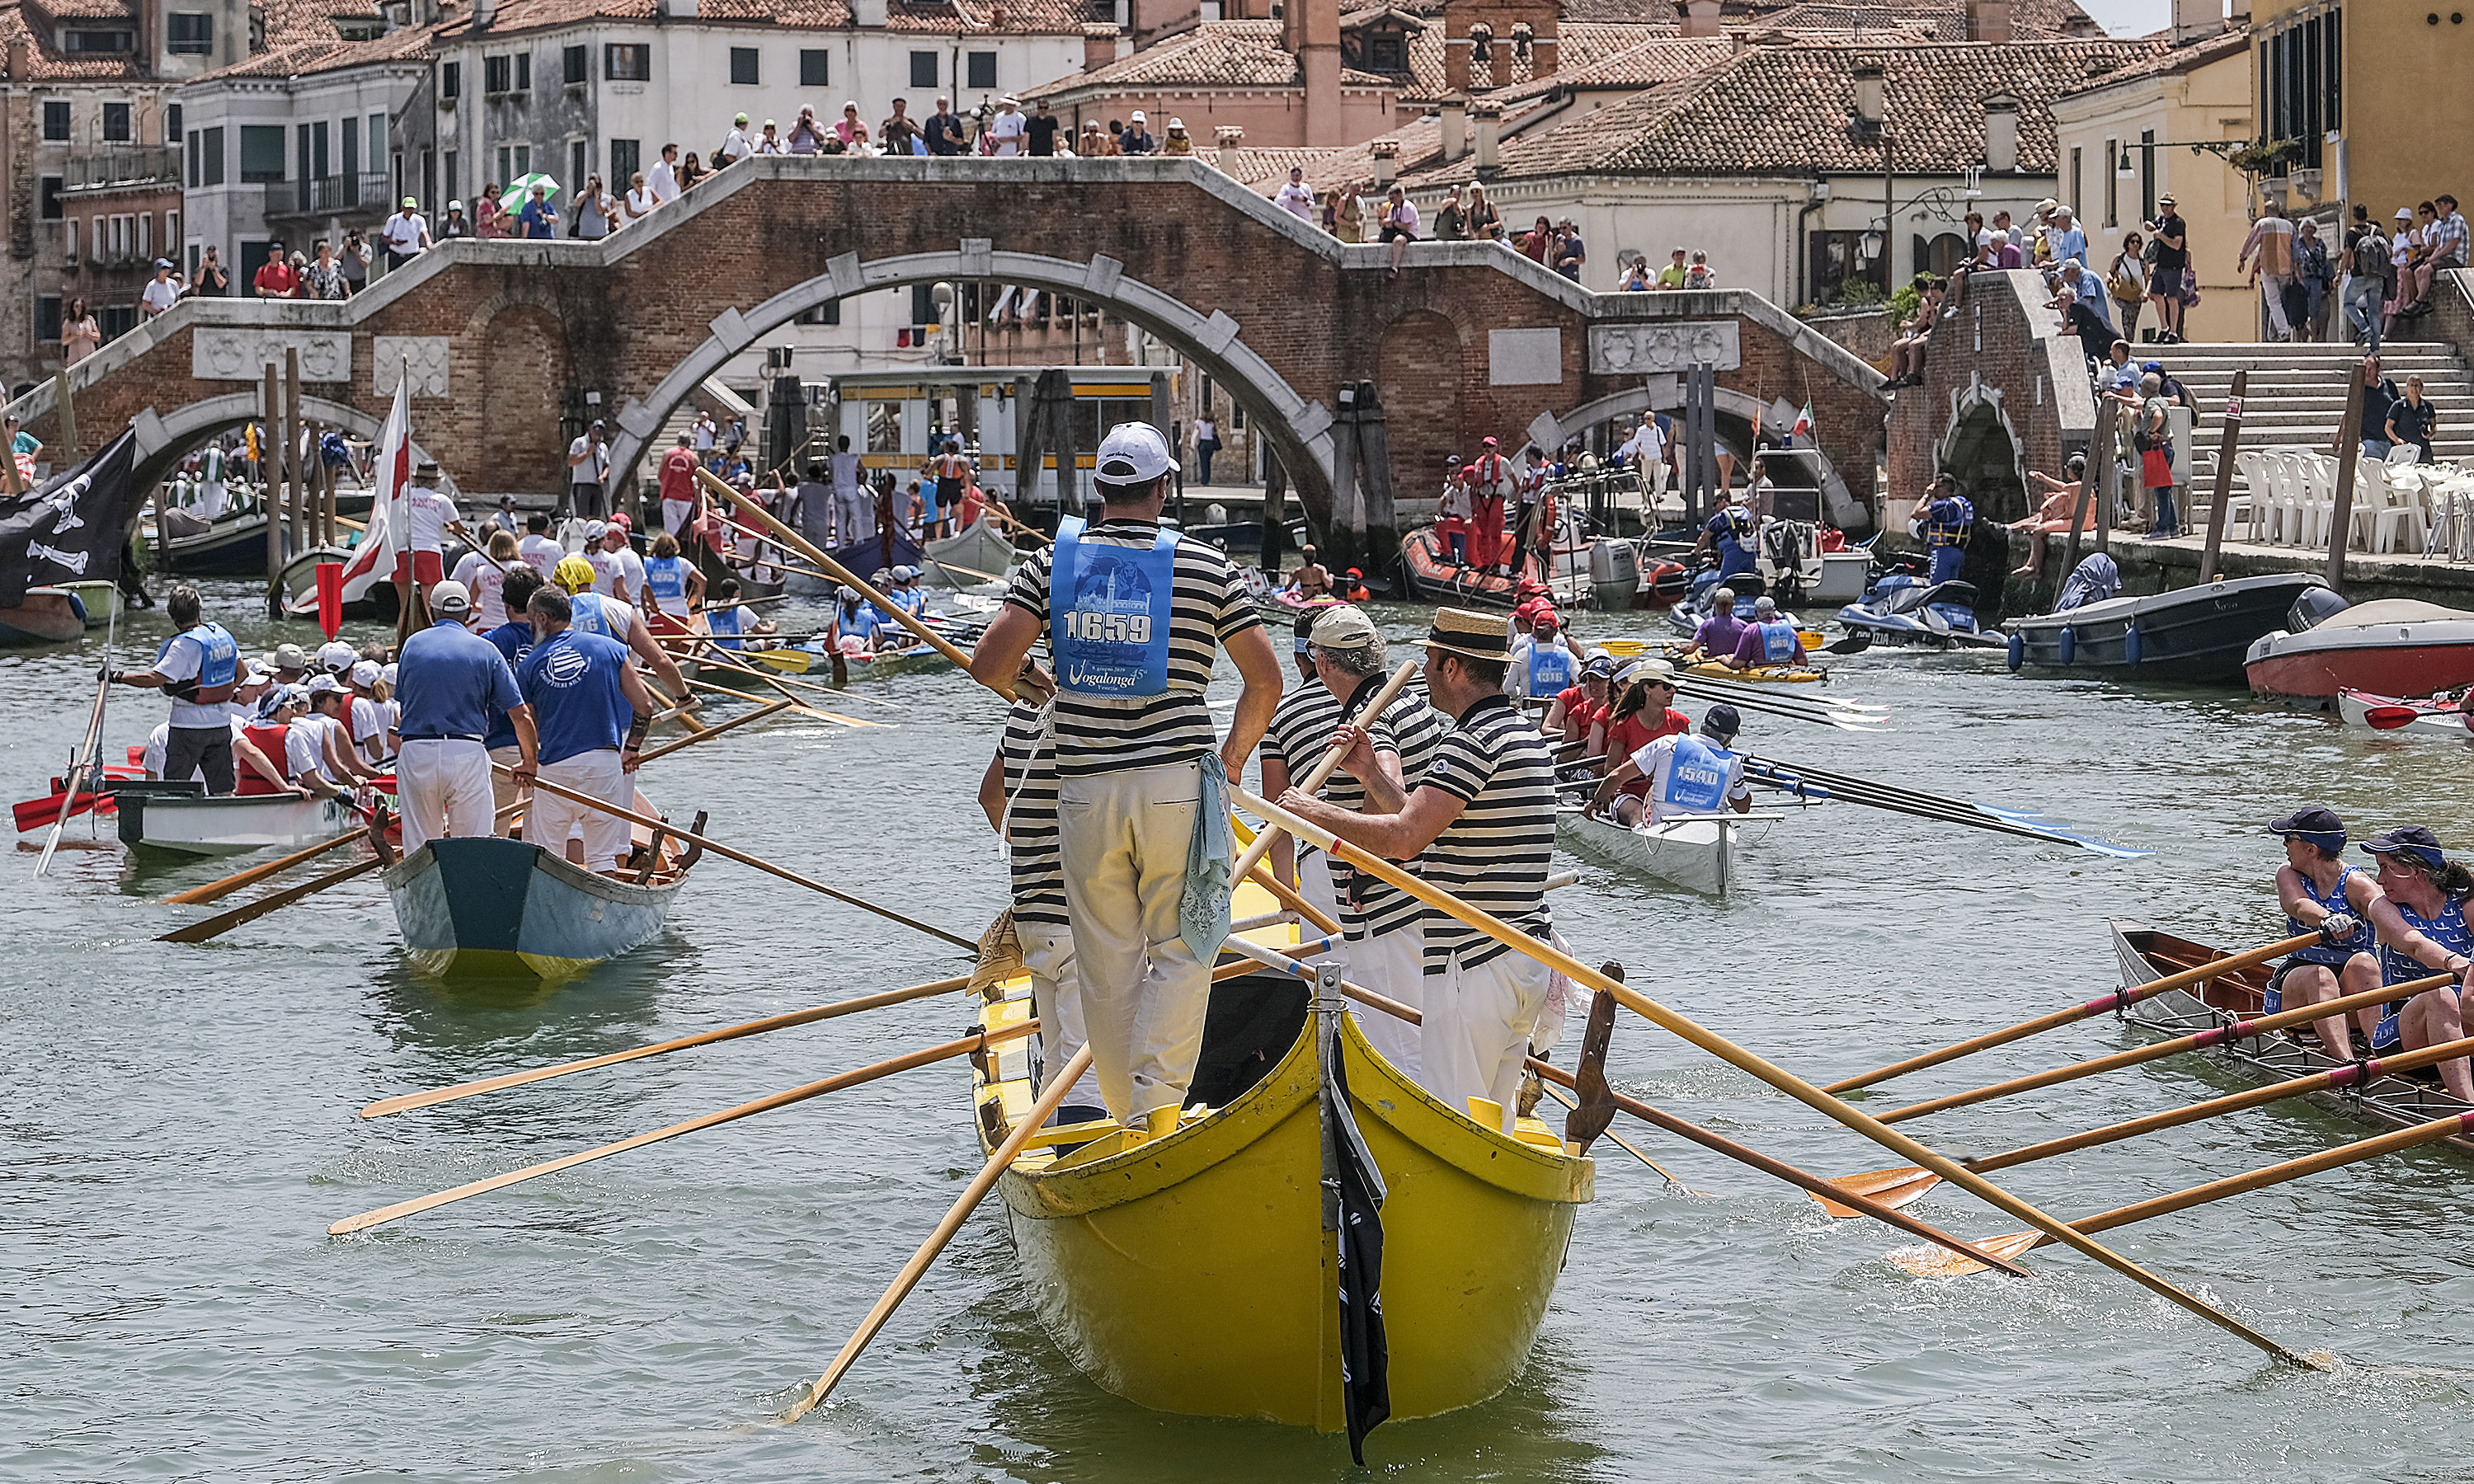 A boat passes through the Cannaregio Canal on June 09, 2019 in Venice, Italy. The 32 km course goes around the lagoon and arrives in the Grand Canal. The event was established in 1974 as a protest against the waves in Venice, caused by the transit of too many motor boats.